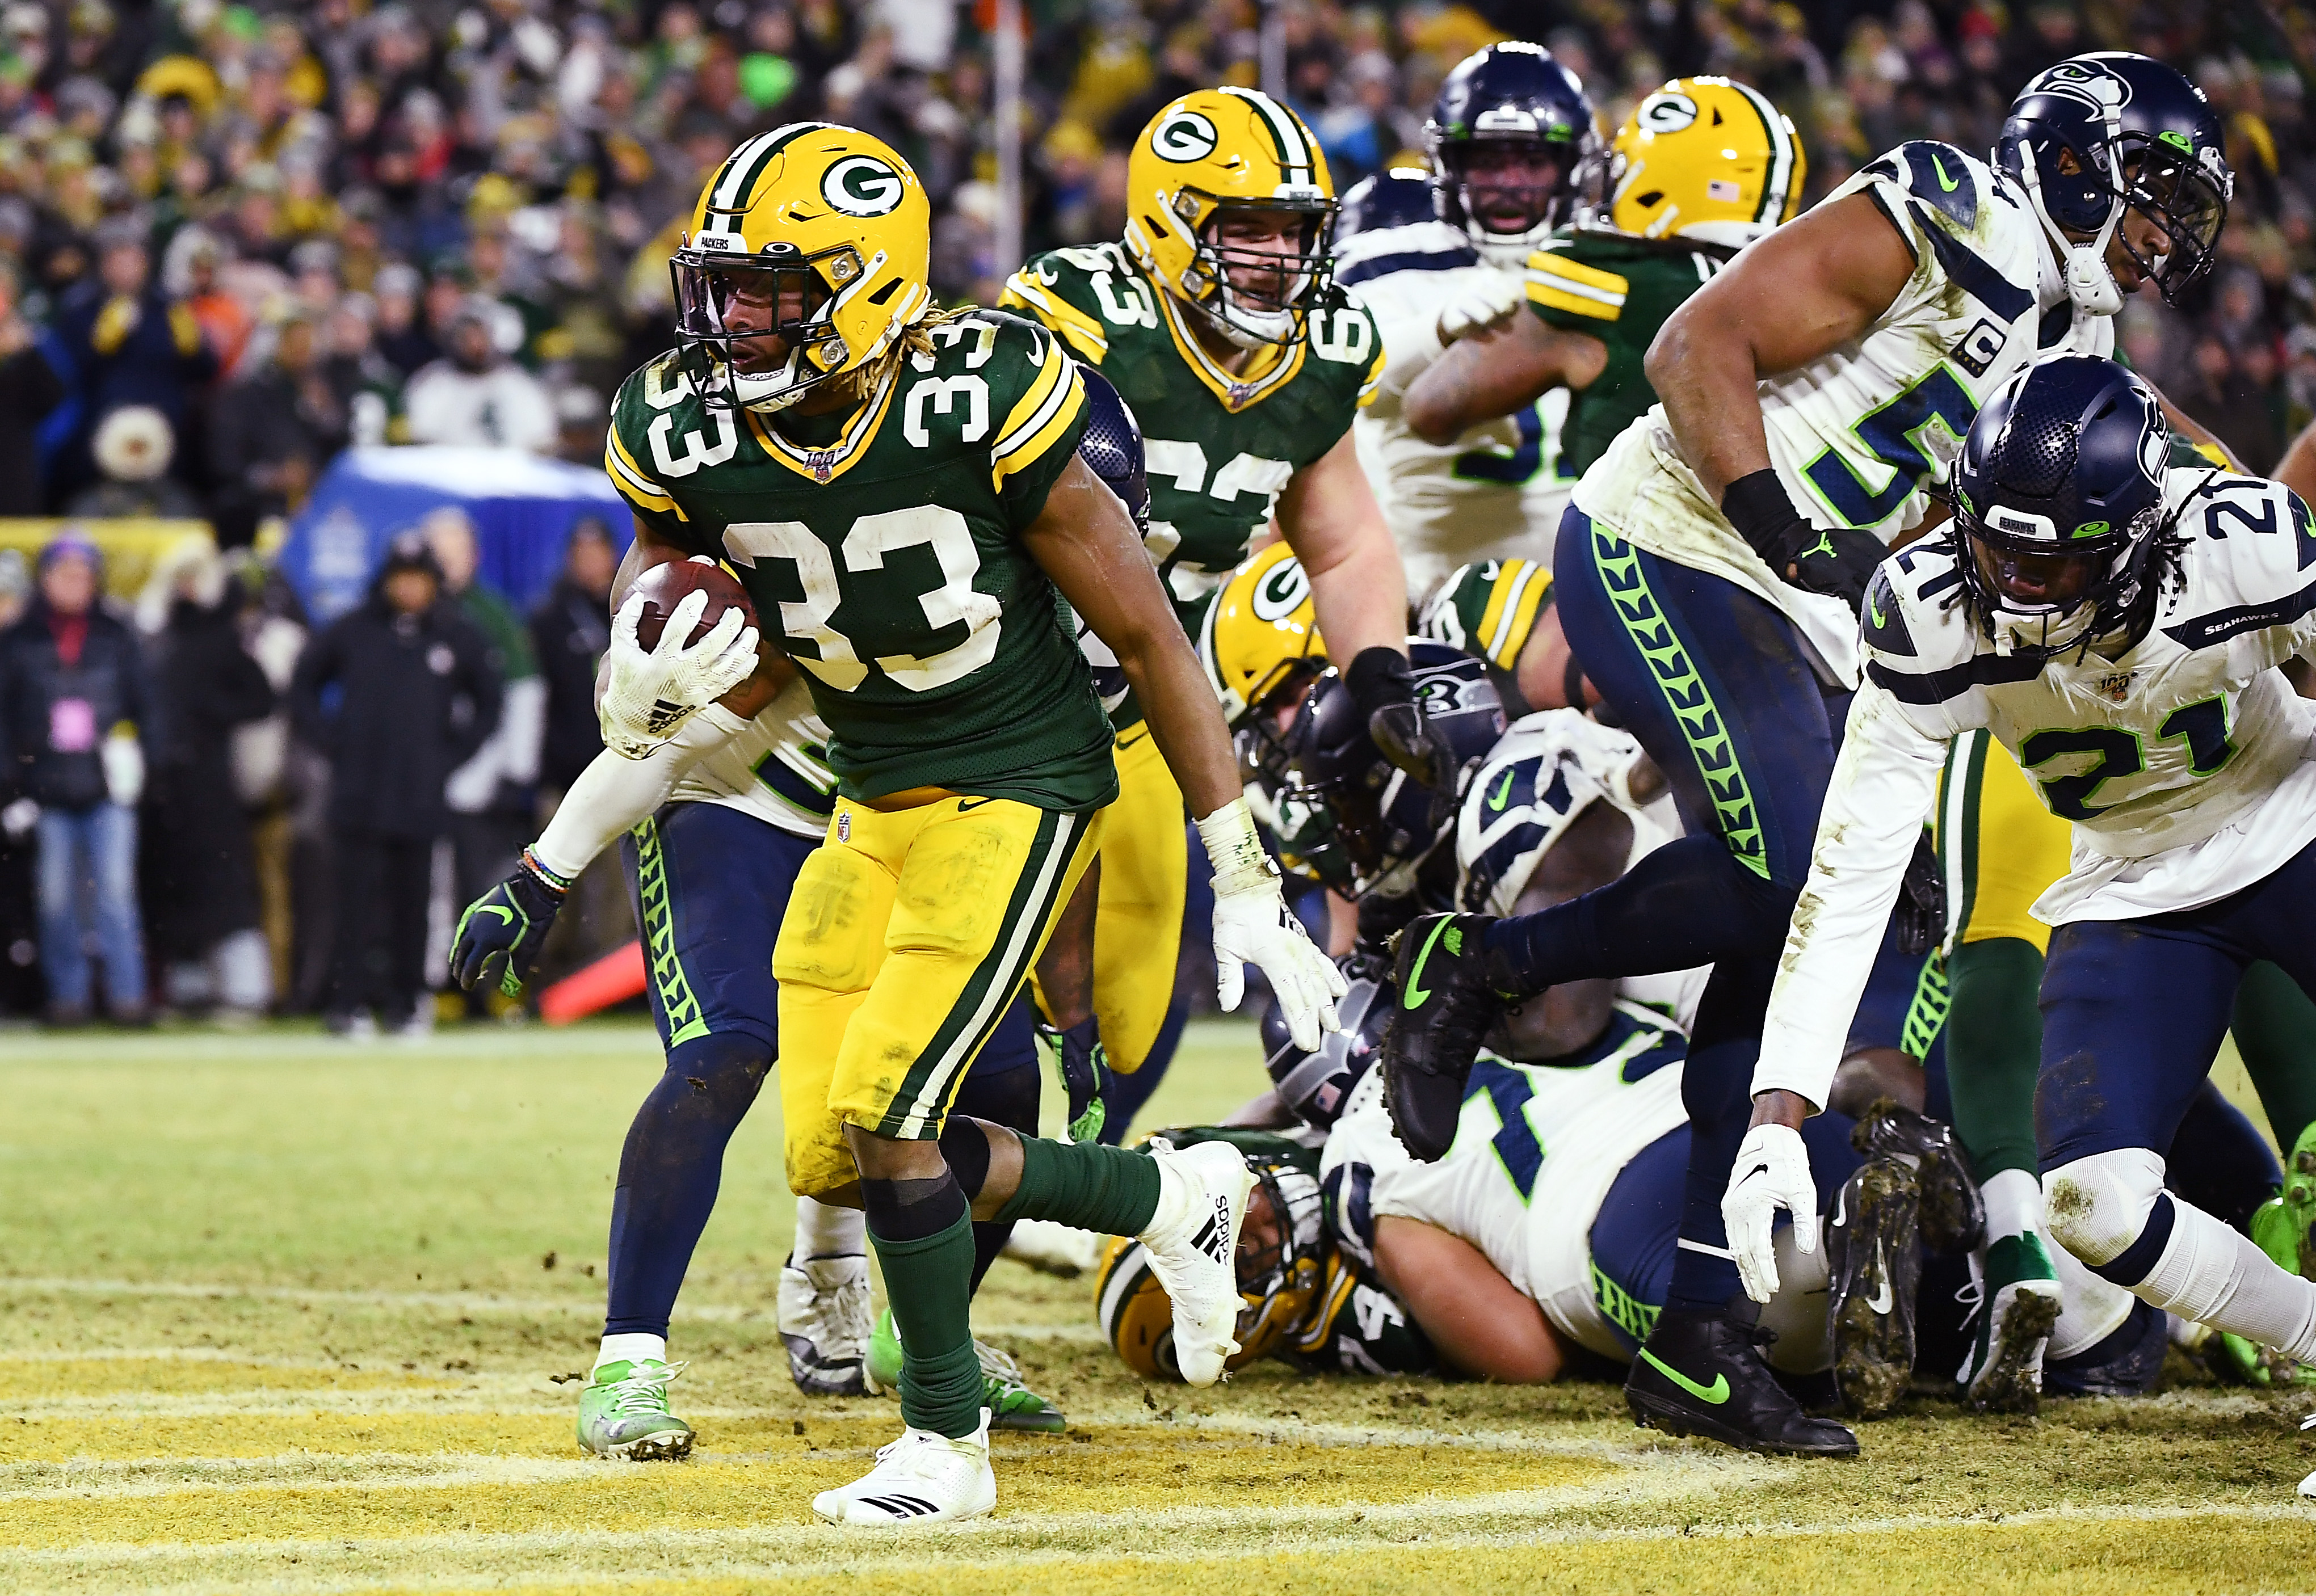 The Packers' Aaron Jones runs for a touchdown against the Seahawks in an NFC playoff game Sunday at Lambeau Field.